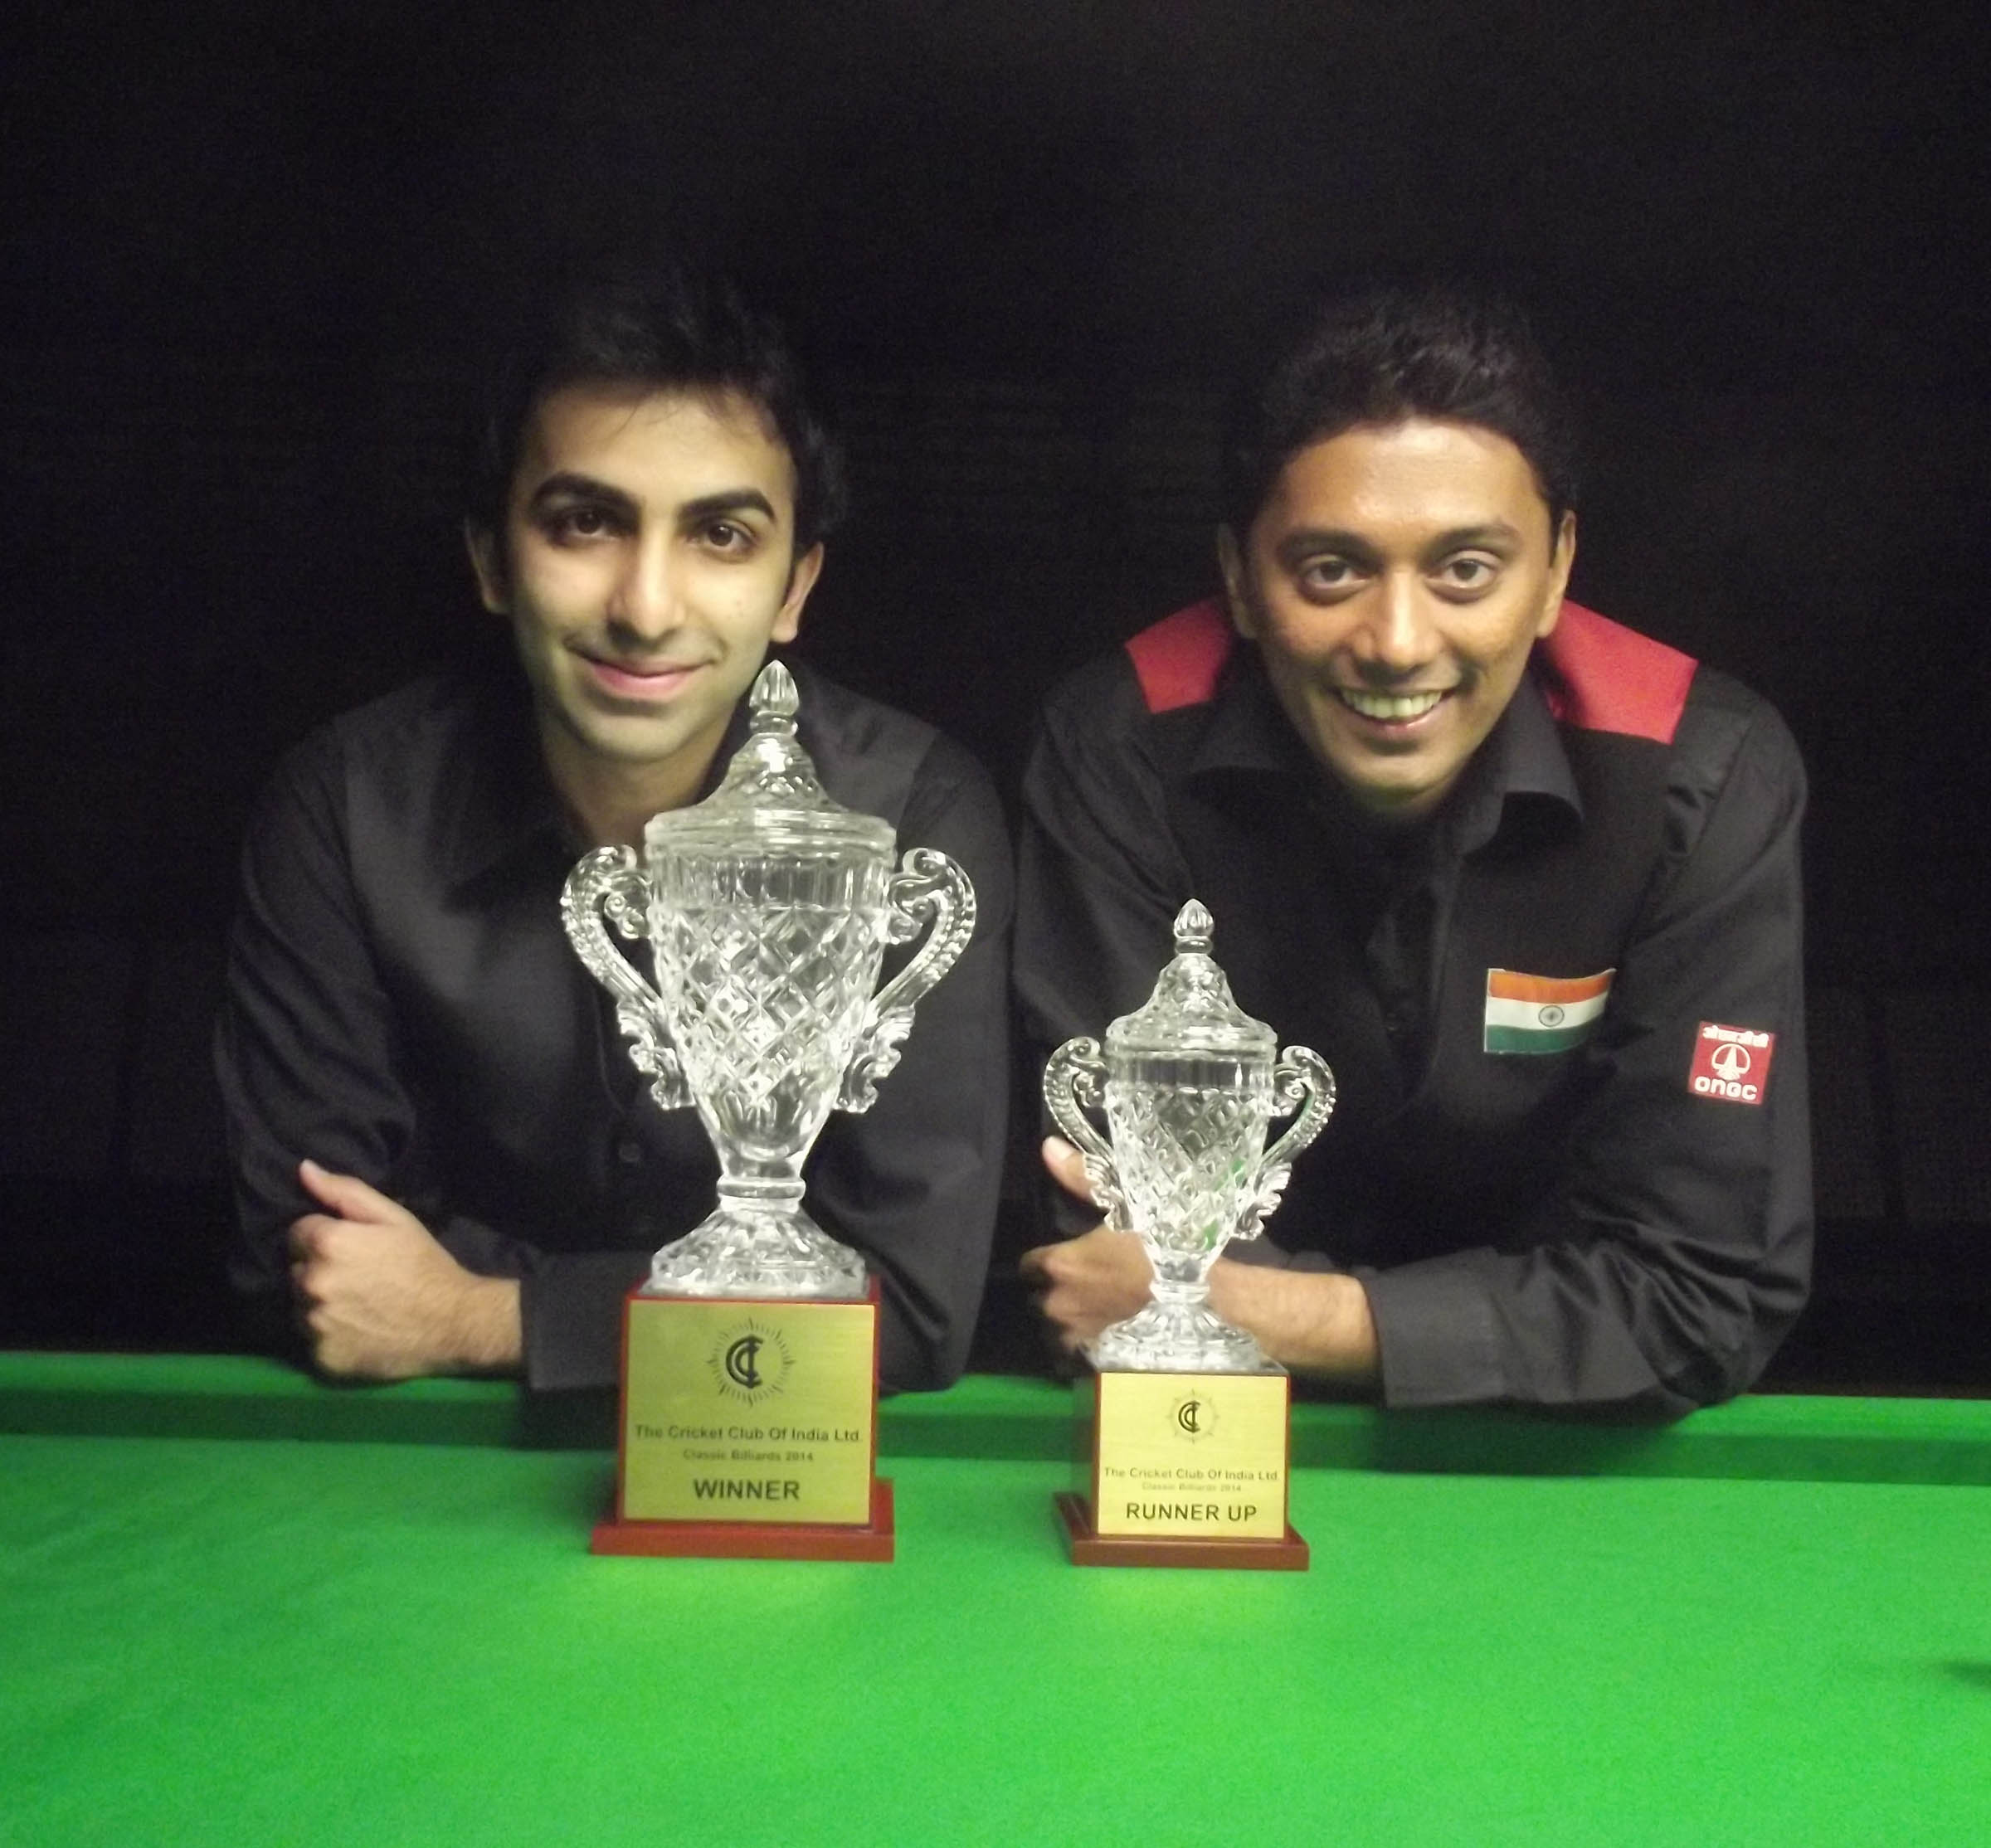 Winner Pankaj Advani (left) and runner-up Dhruv Sitwala